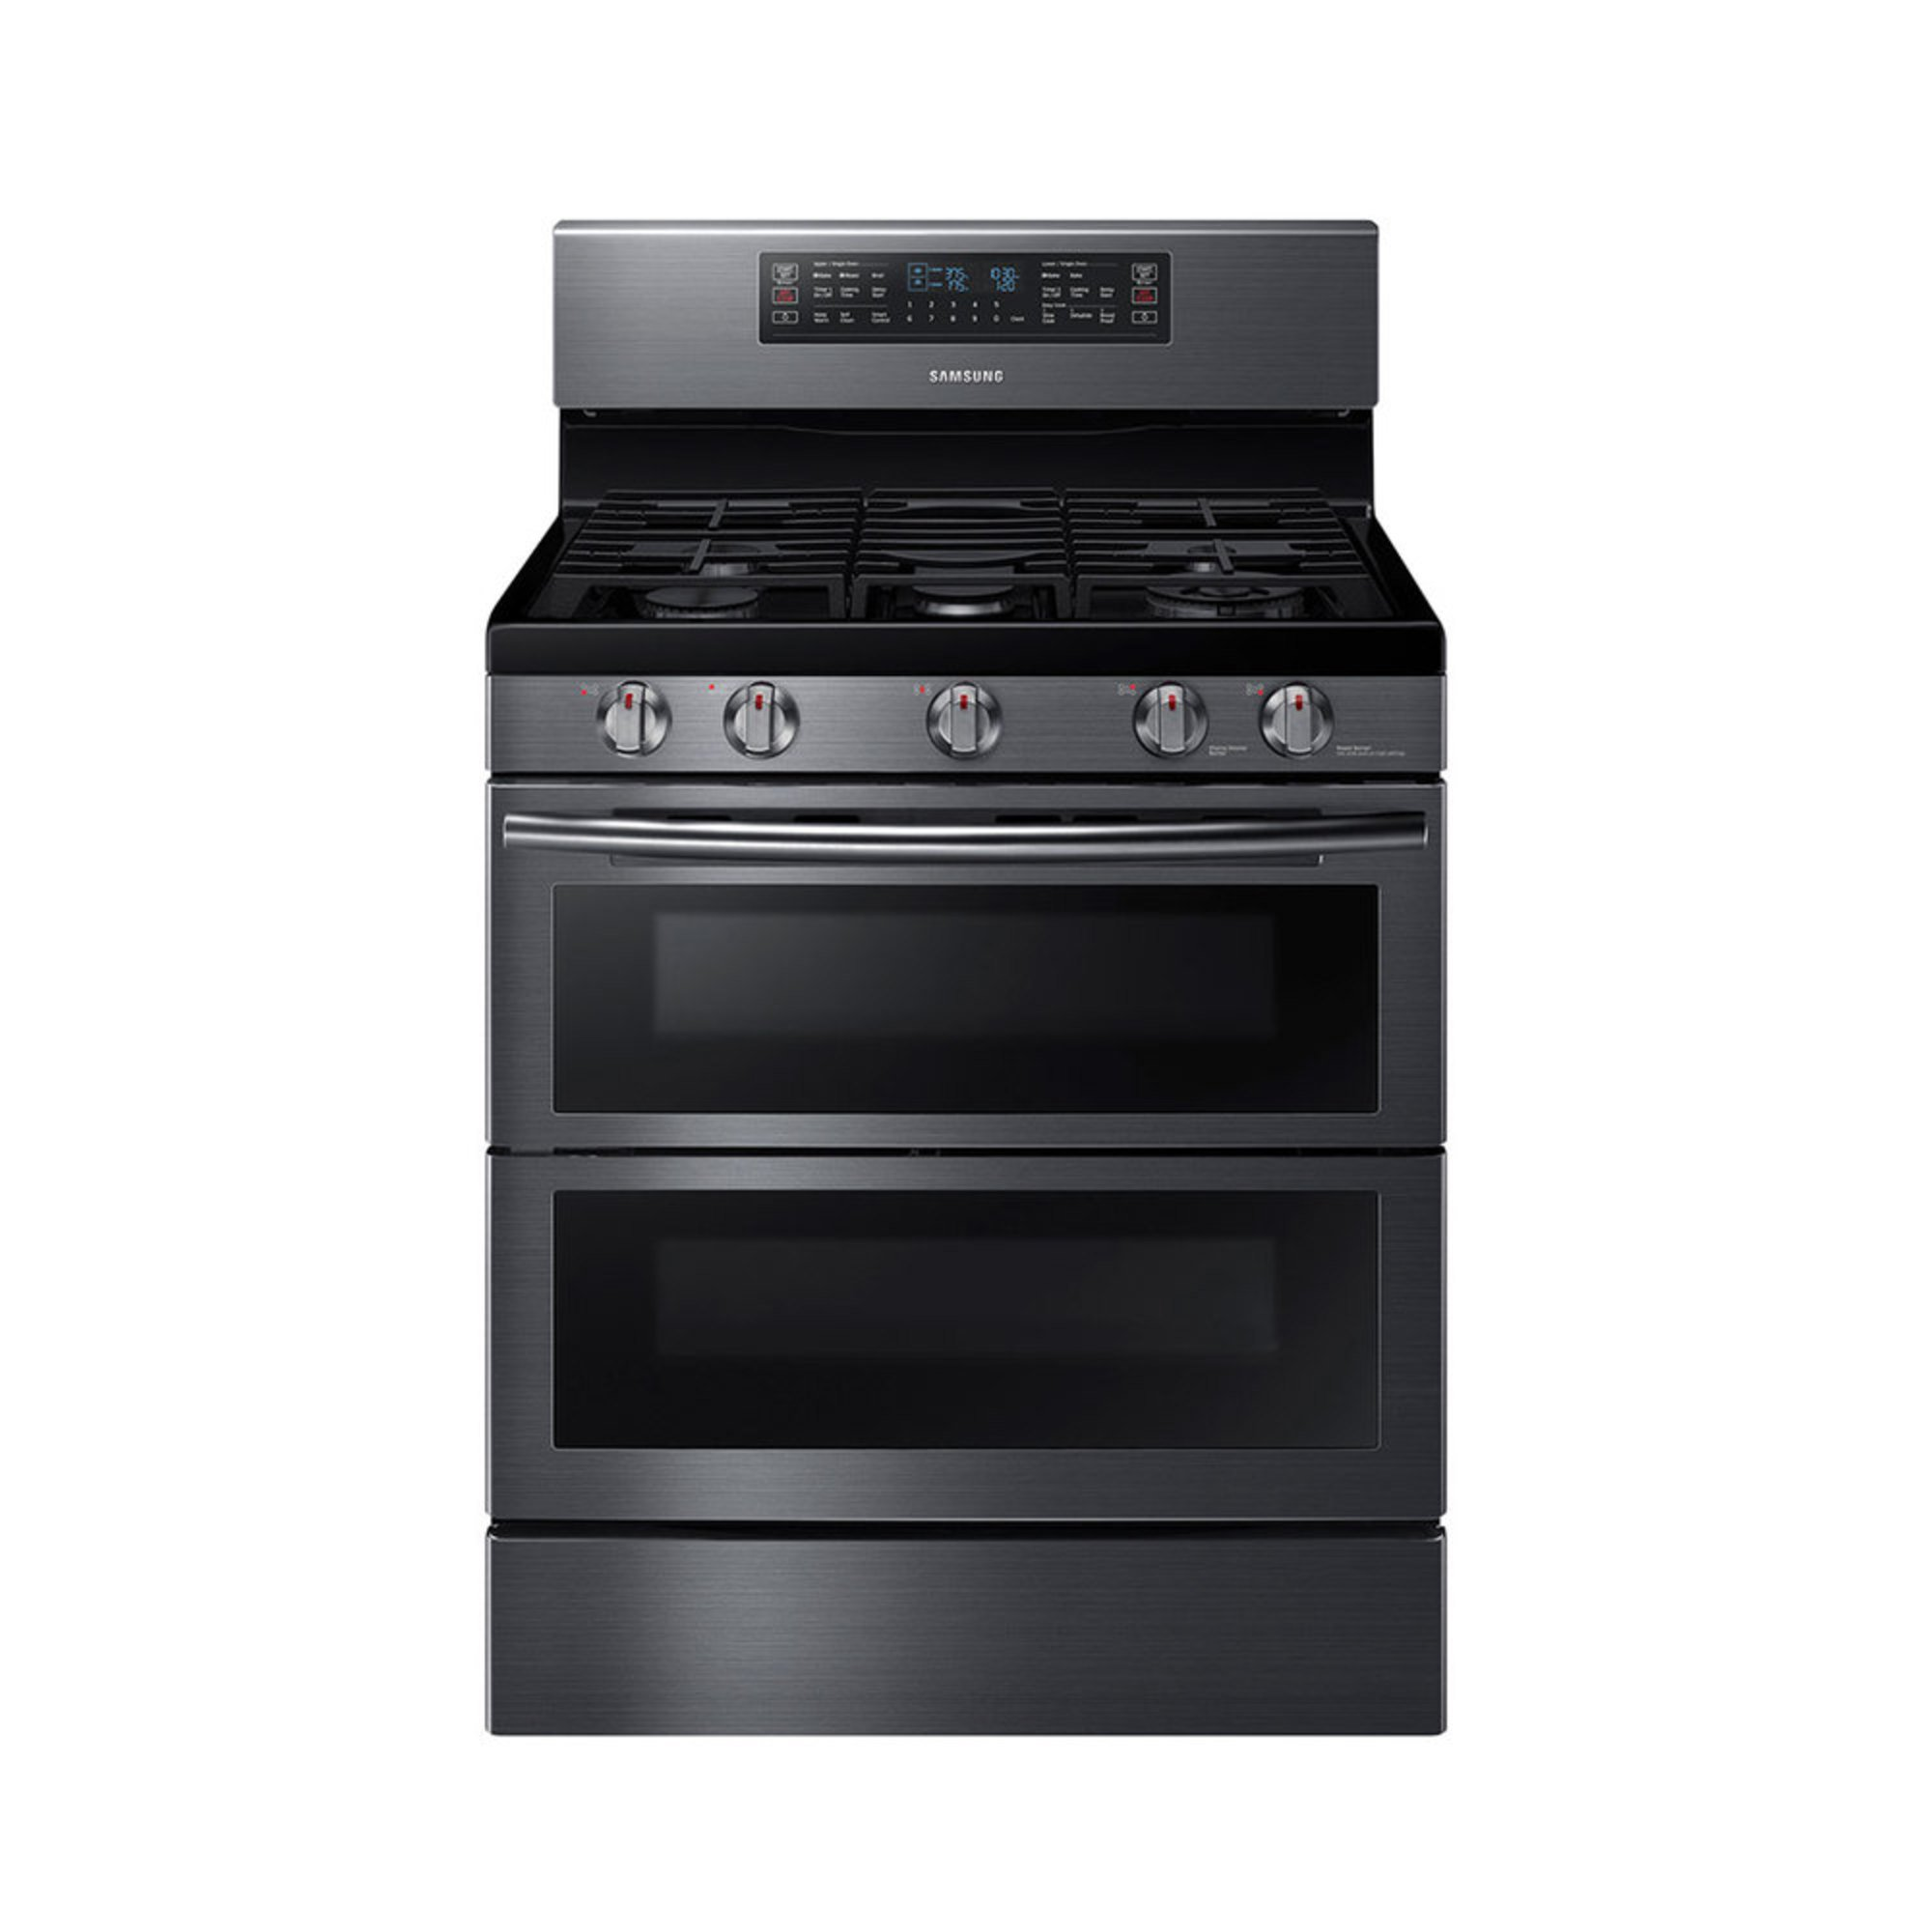 Samsung 5 8 oven gas range black stainless steel nx58k7850sg gas ranges for - Gas stove double oven reviews ...